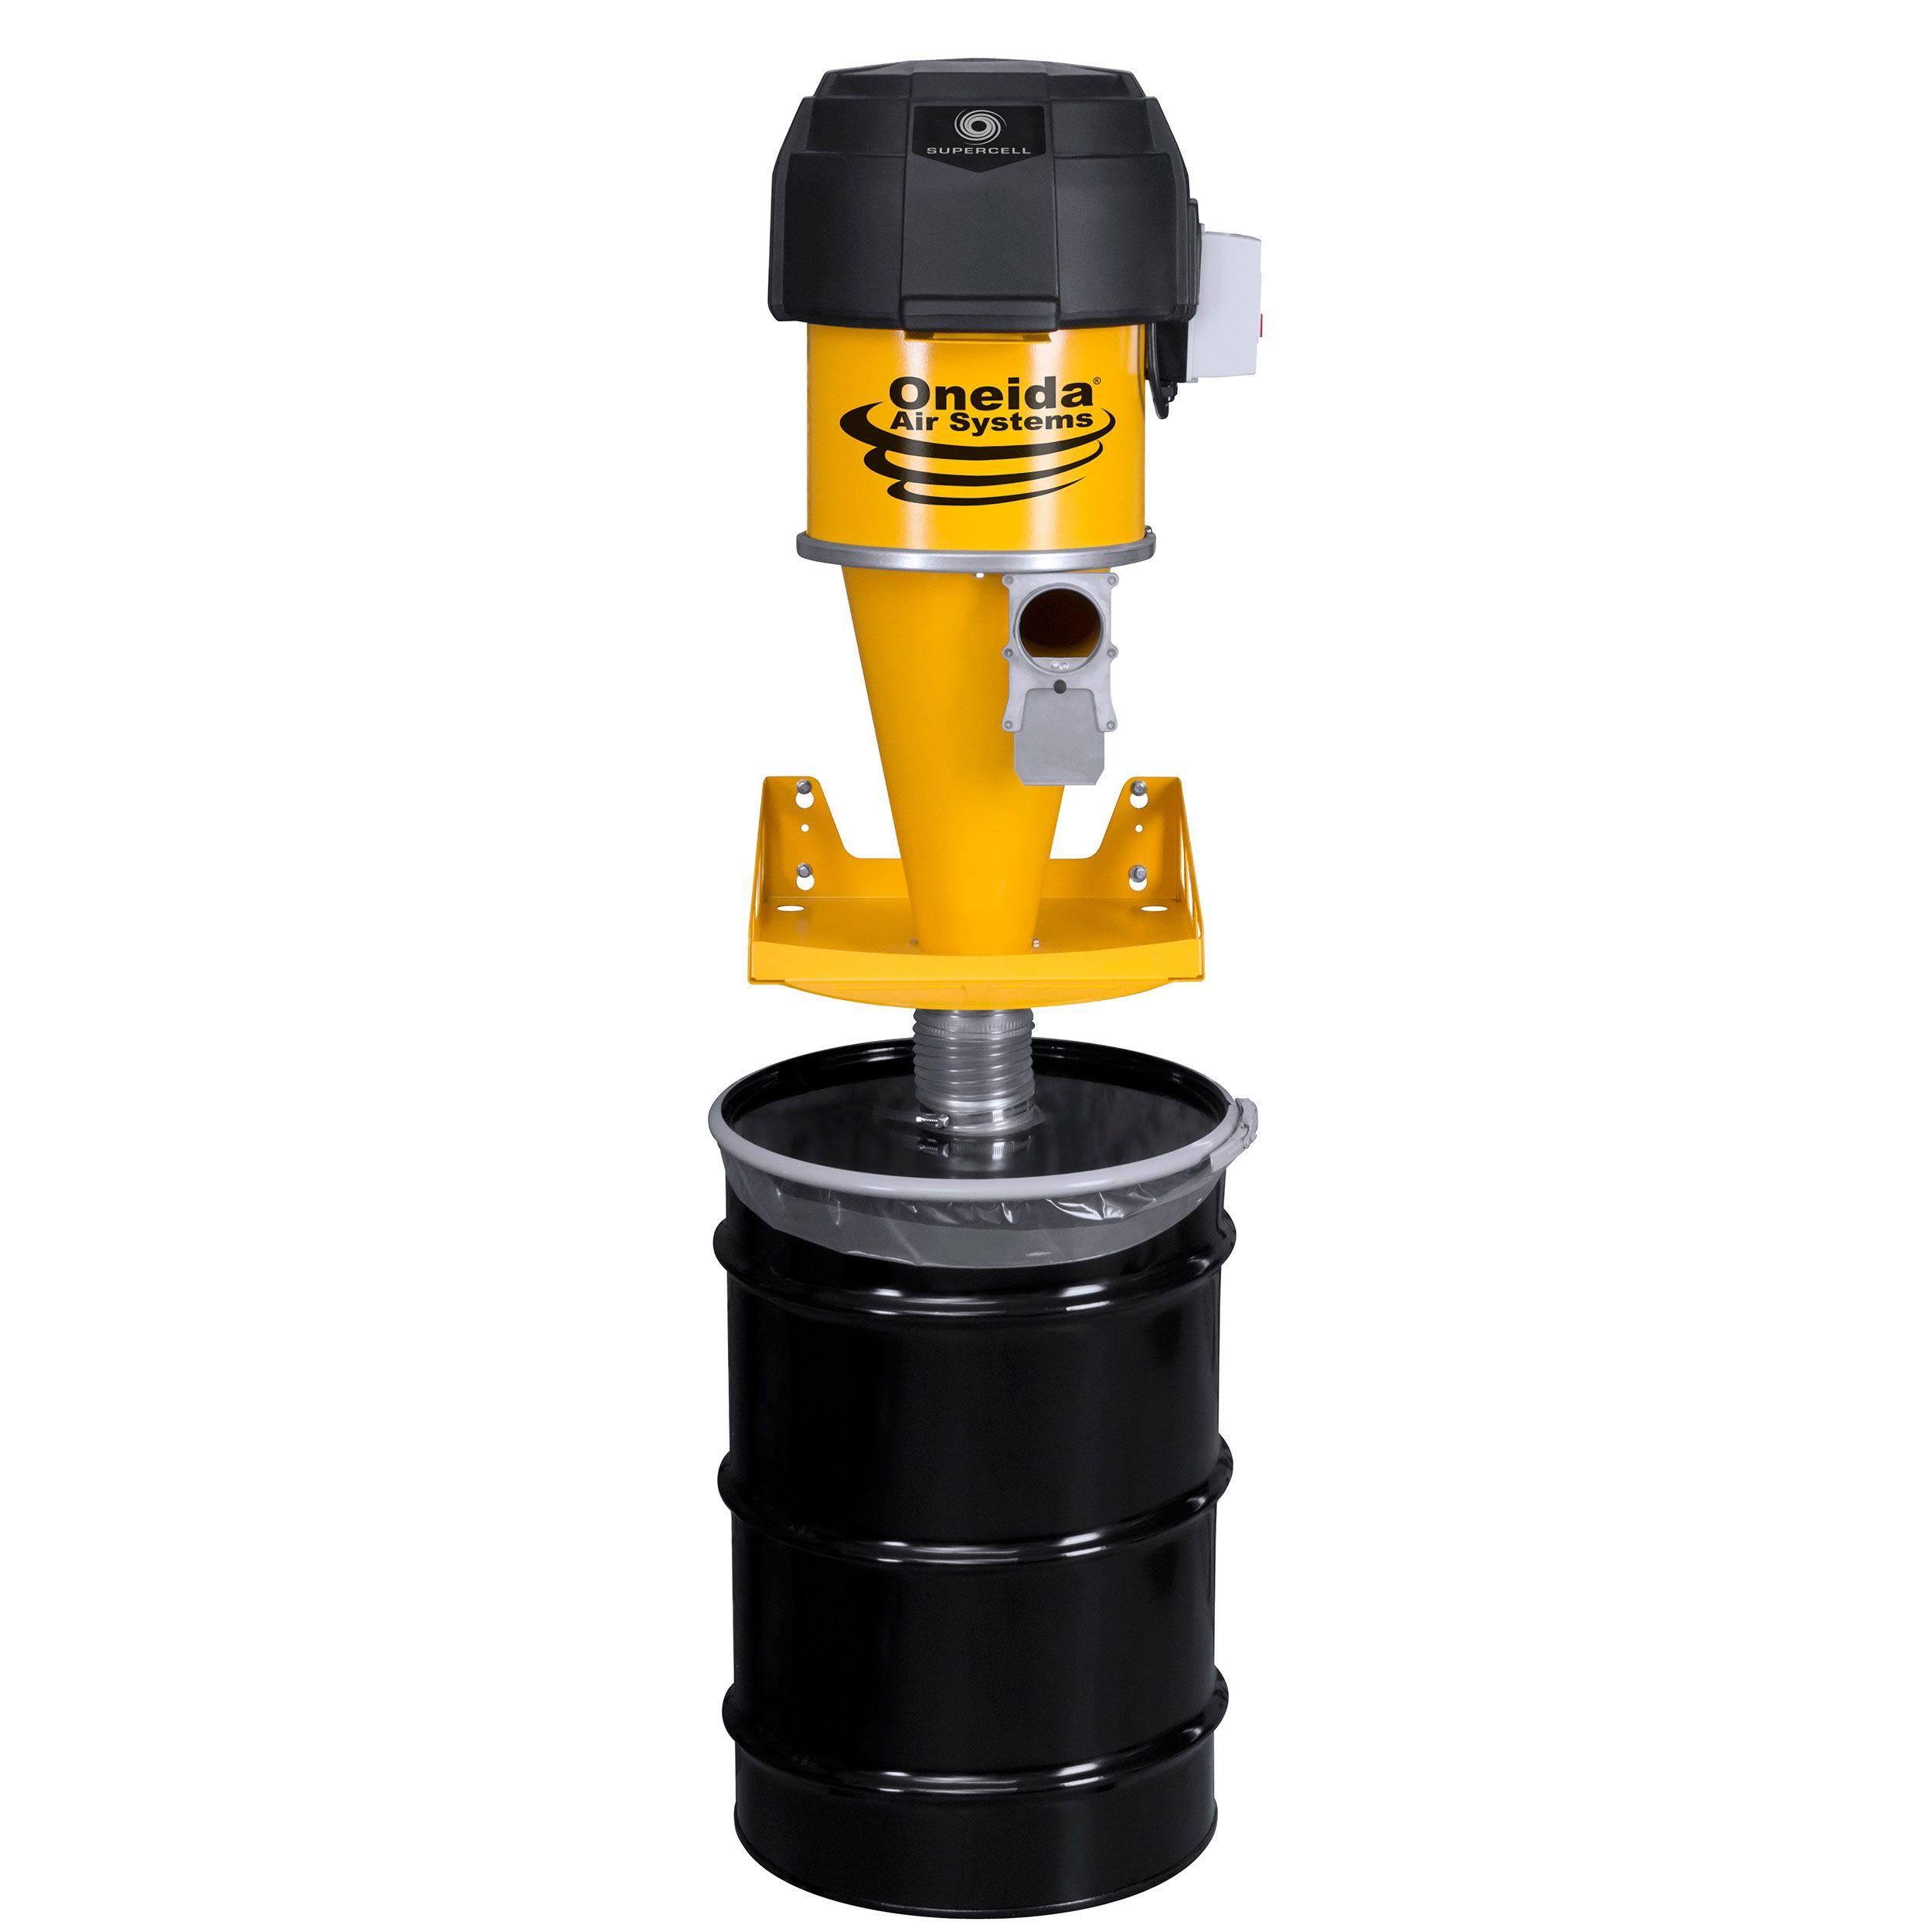 Supercell HighPressure Dust Collector, 55 Gallon Dust